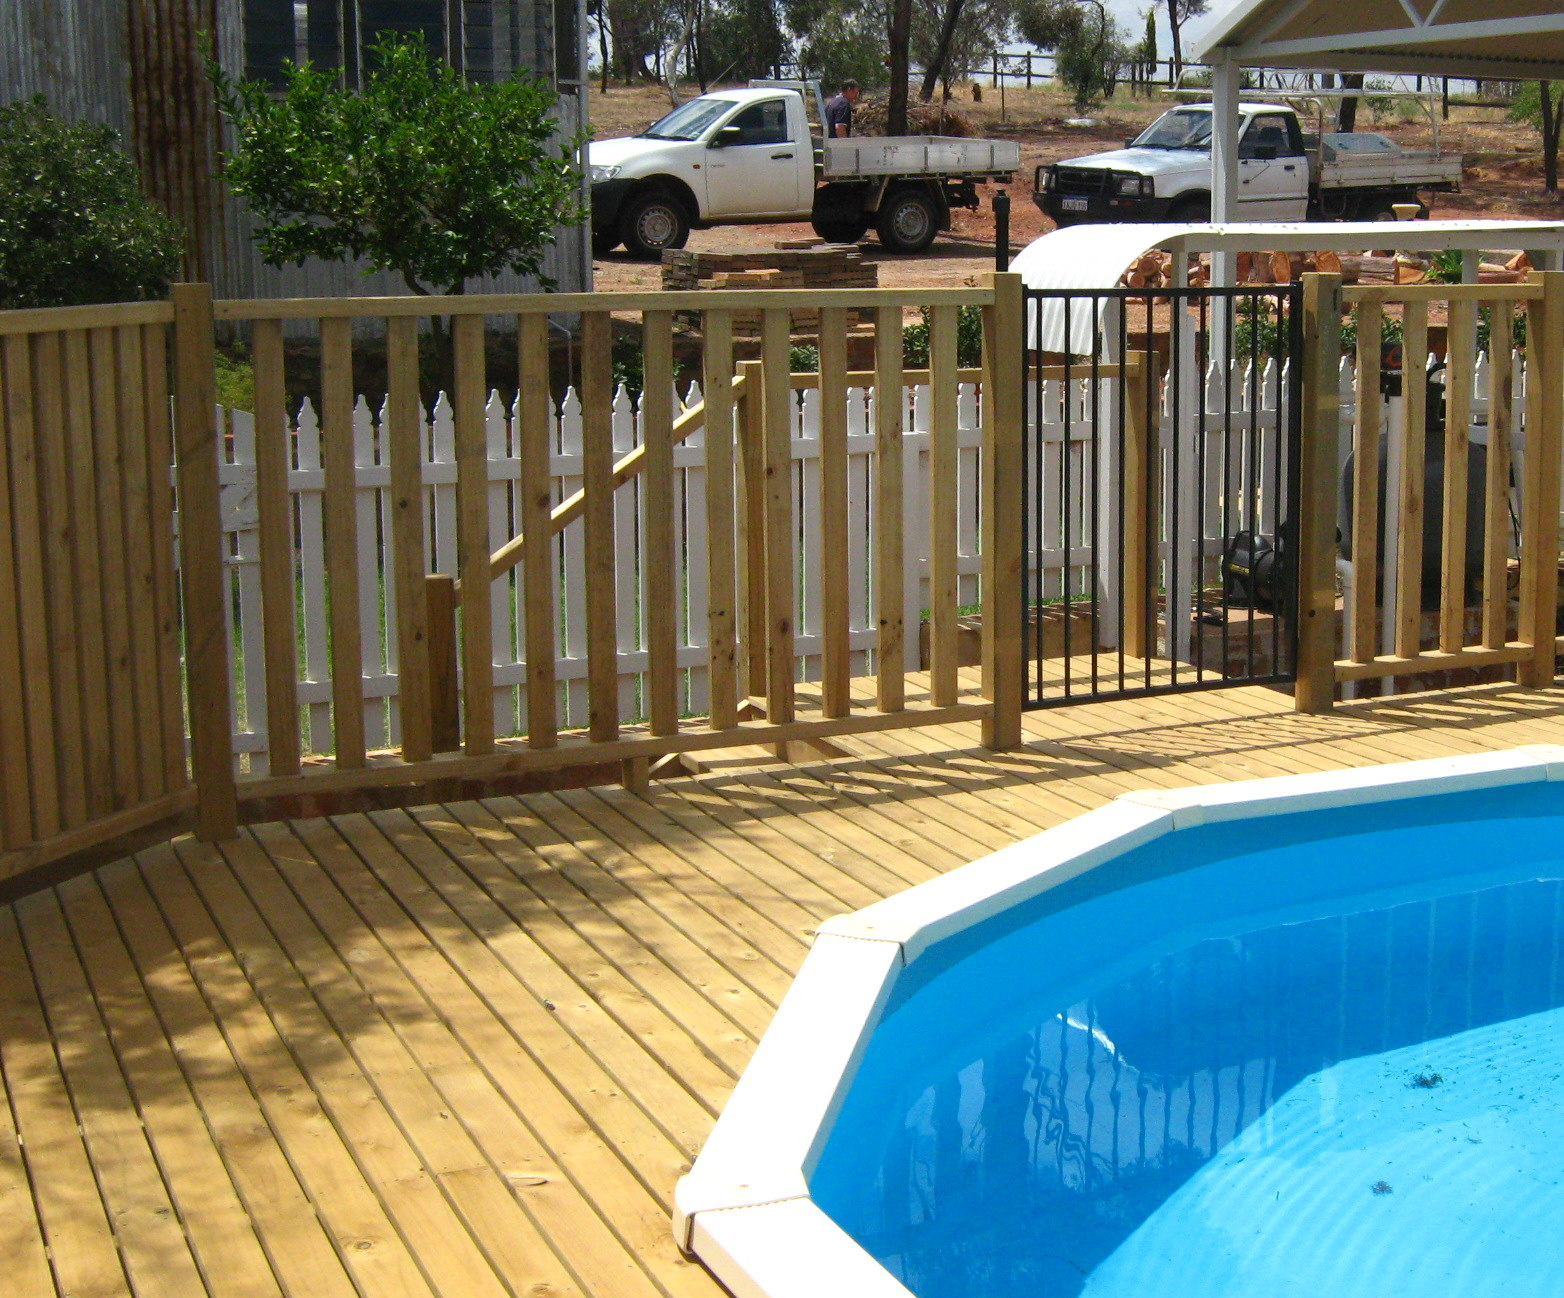 Pool fence and gate kamelot constructions